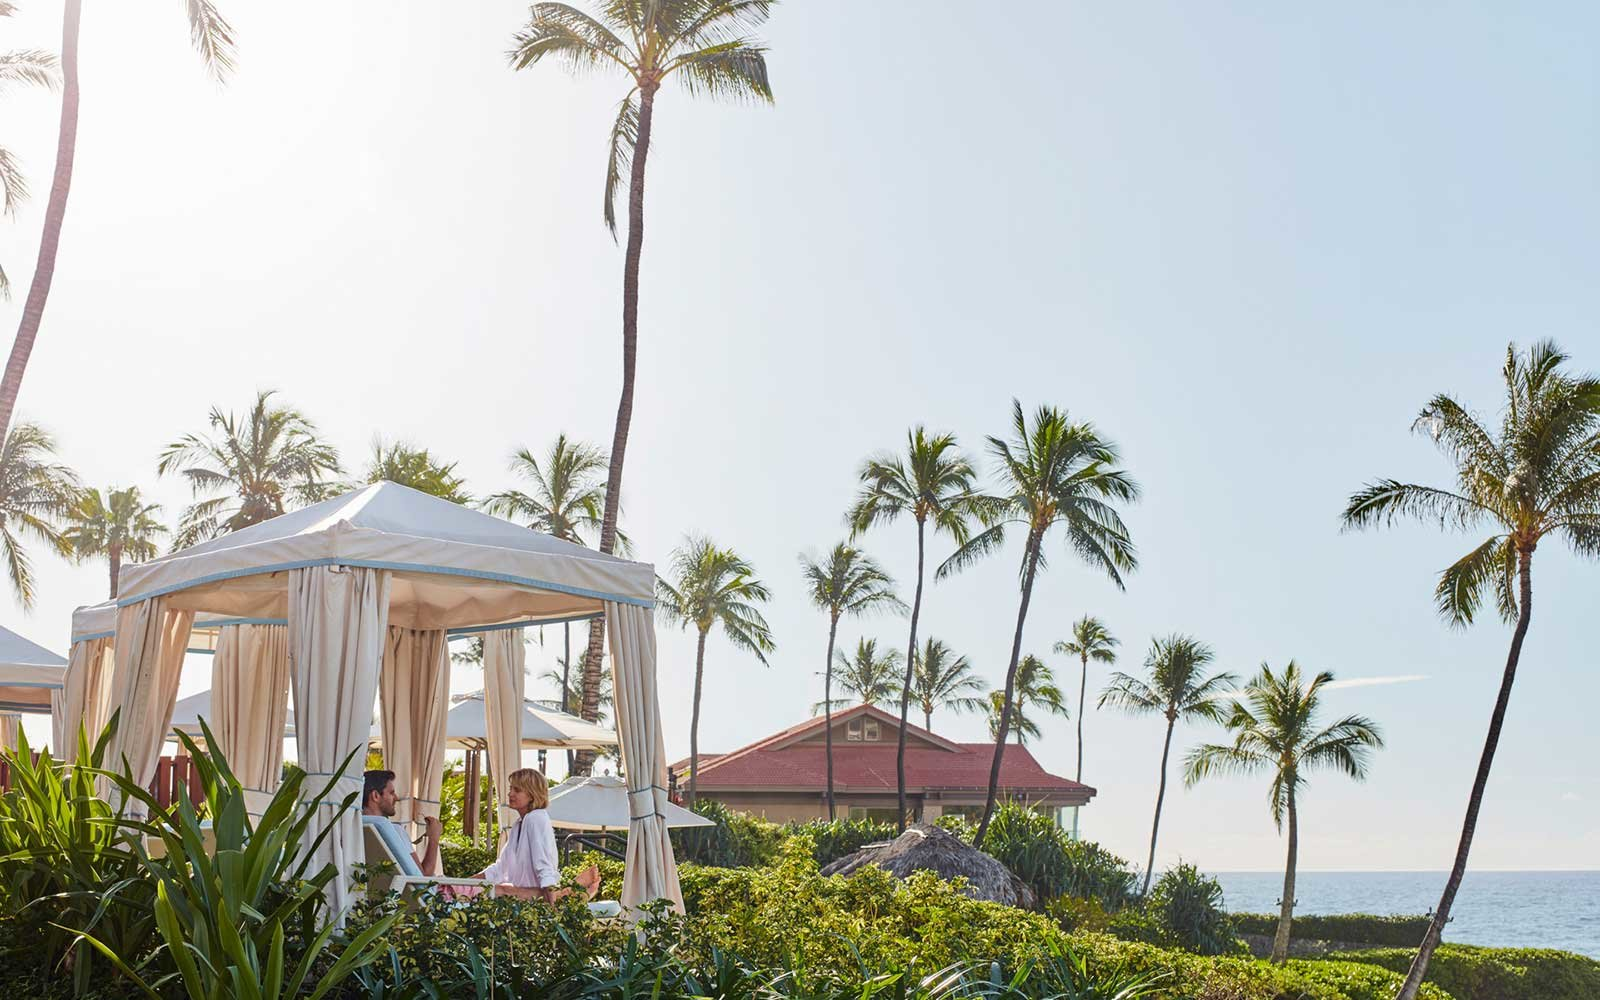 Four Seasons Resort Maui at Wailea Hotel in Hawaii